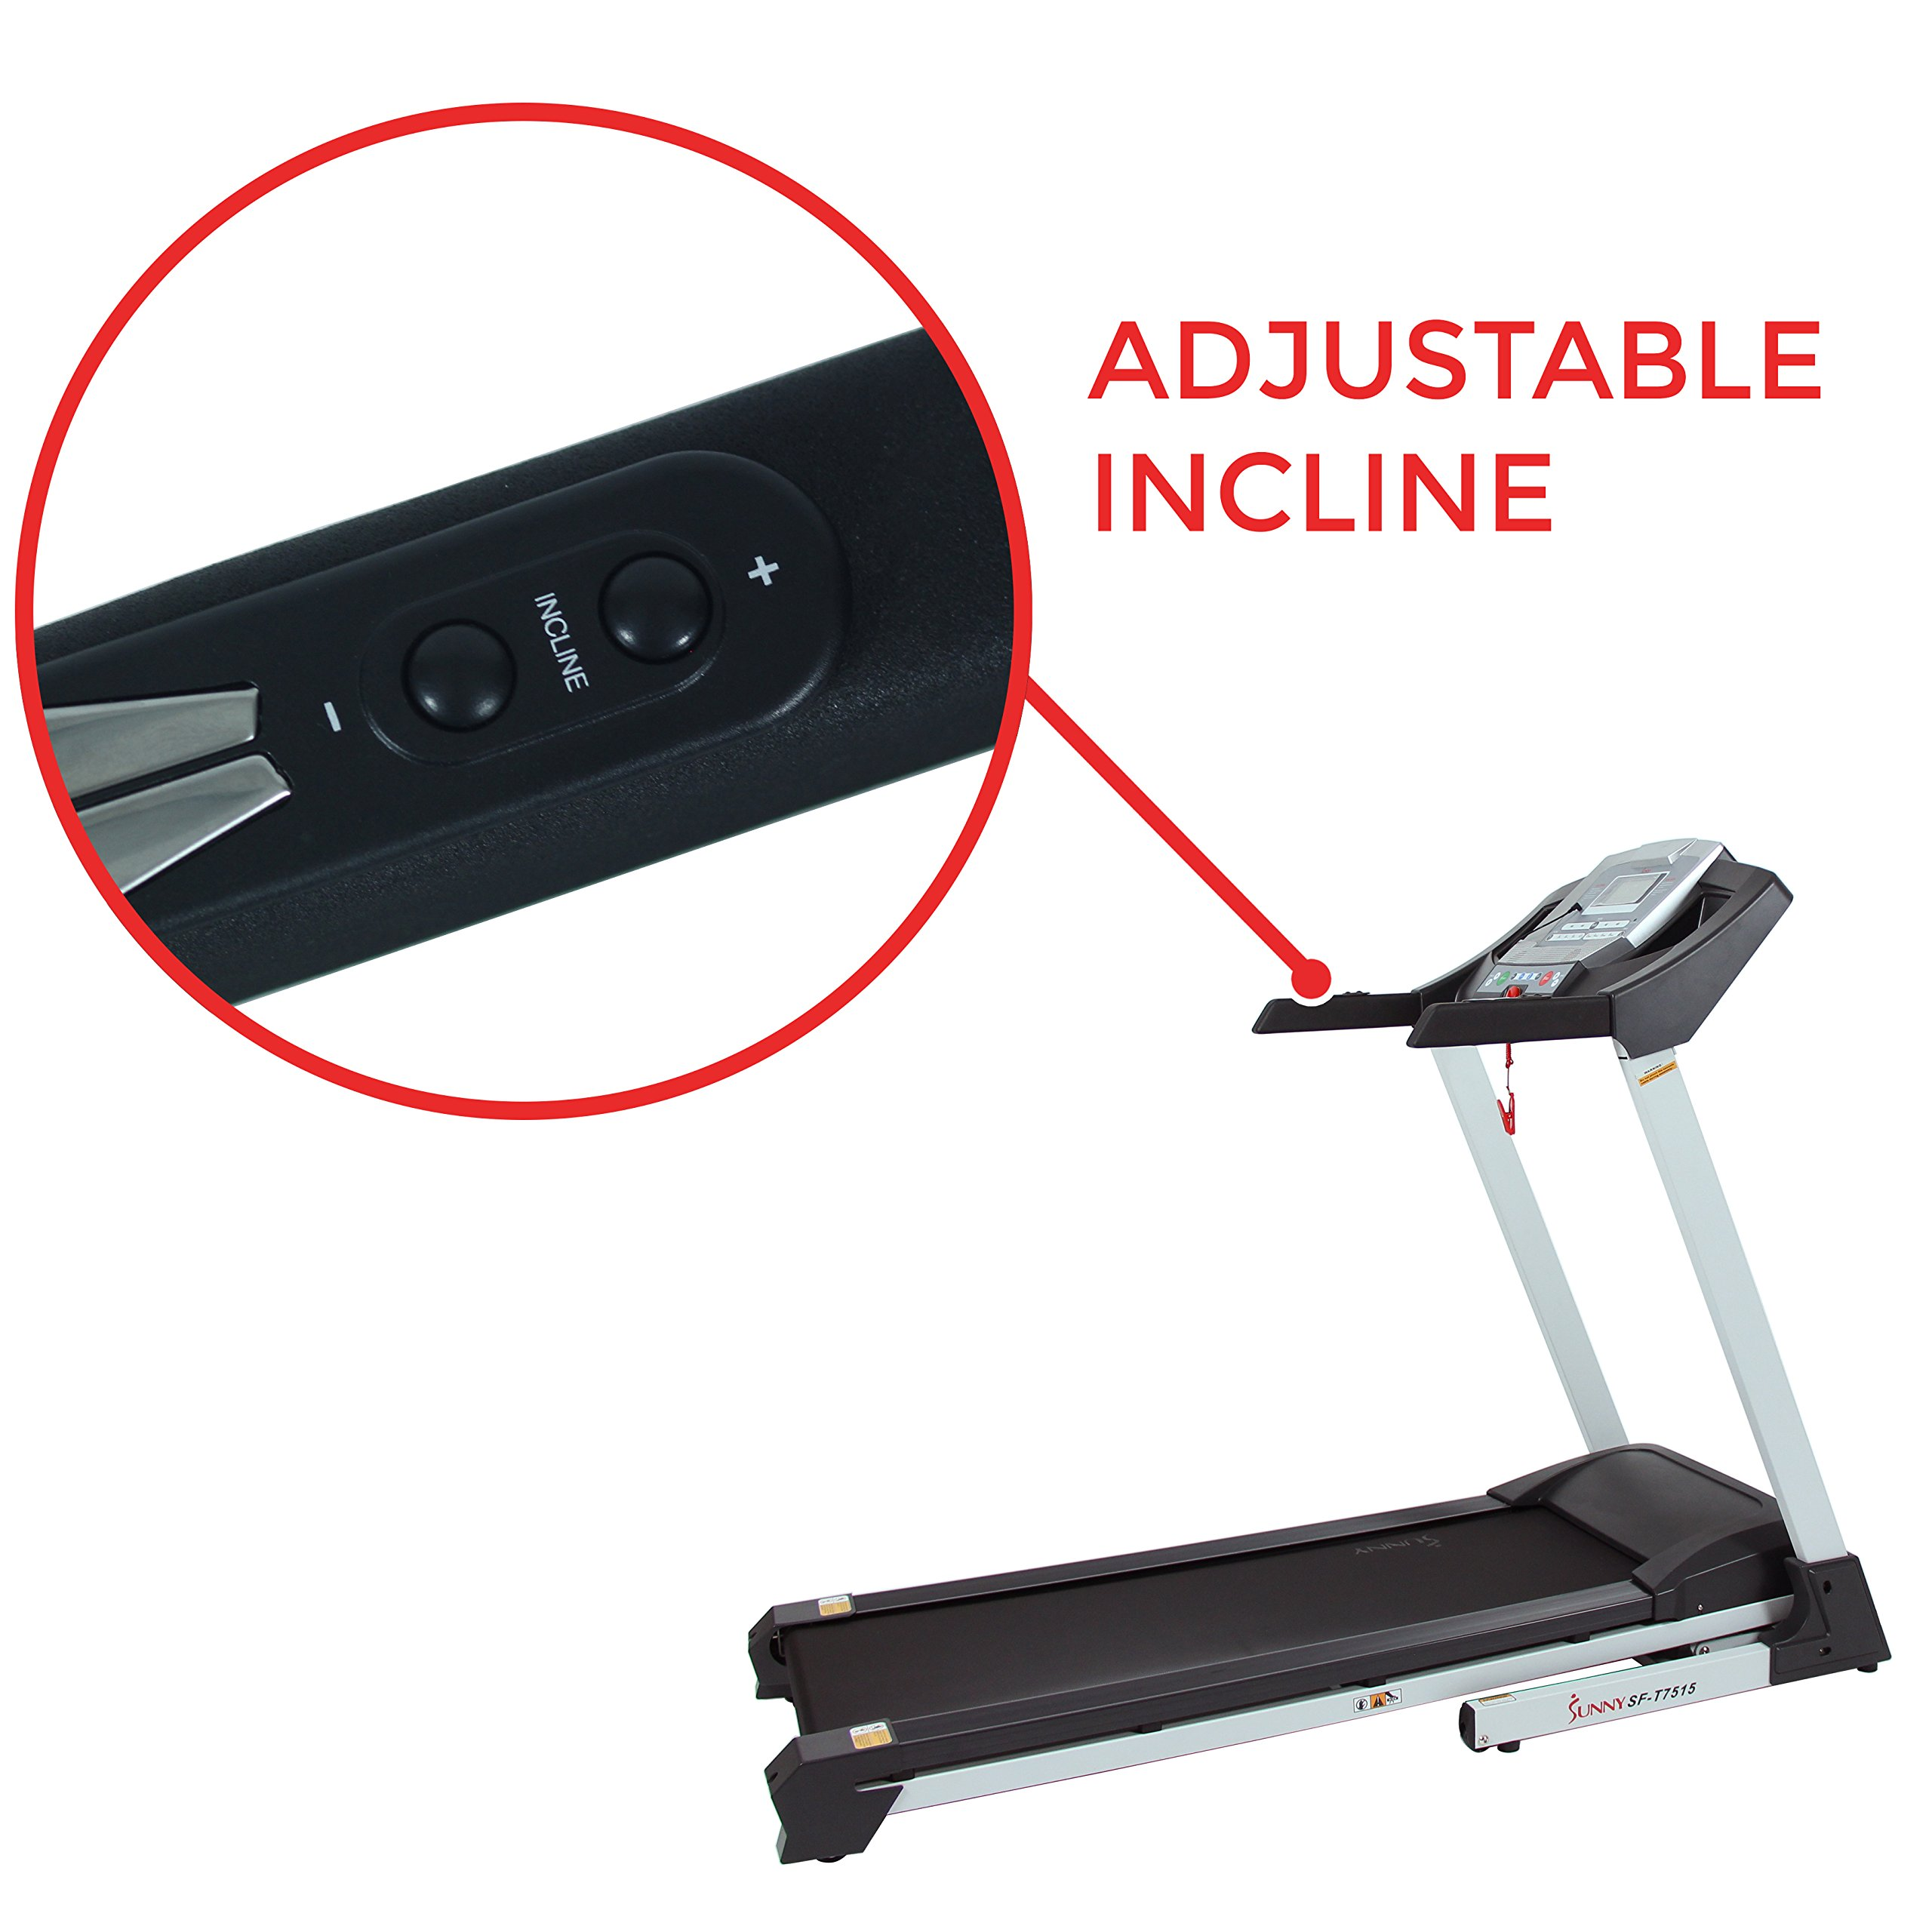 Sunny Health & Fitness SF-T7515 Smart Treadmill with Auto Incline, Bluetooth and BMI Calculator by Sunny Health & Fitness (Image #5)